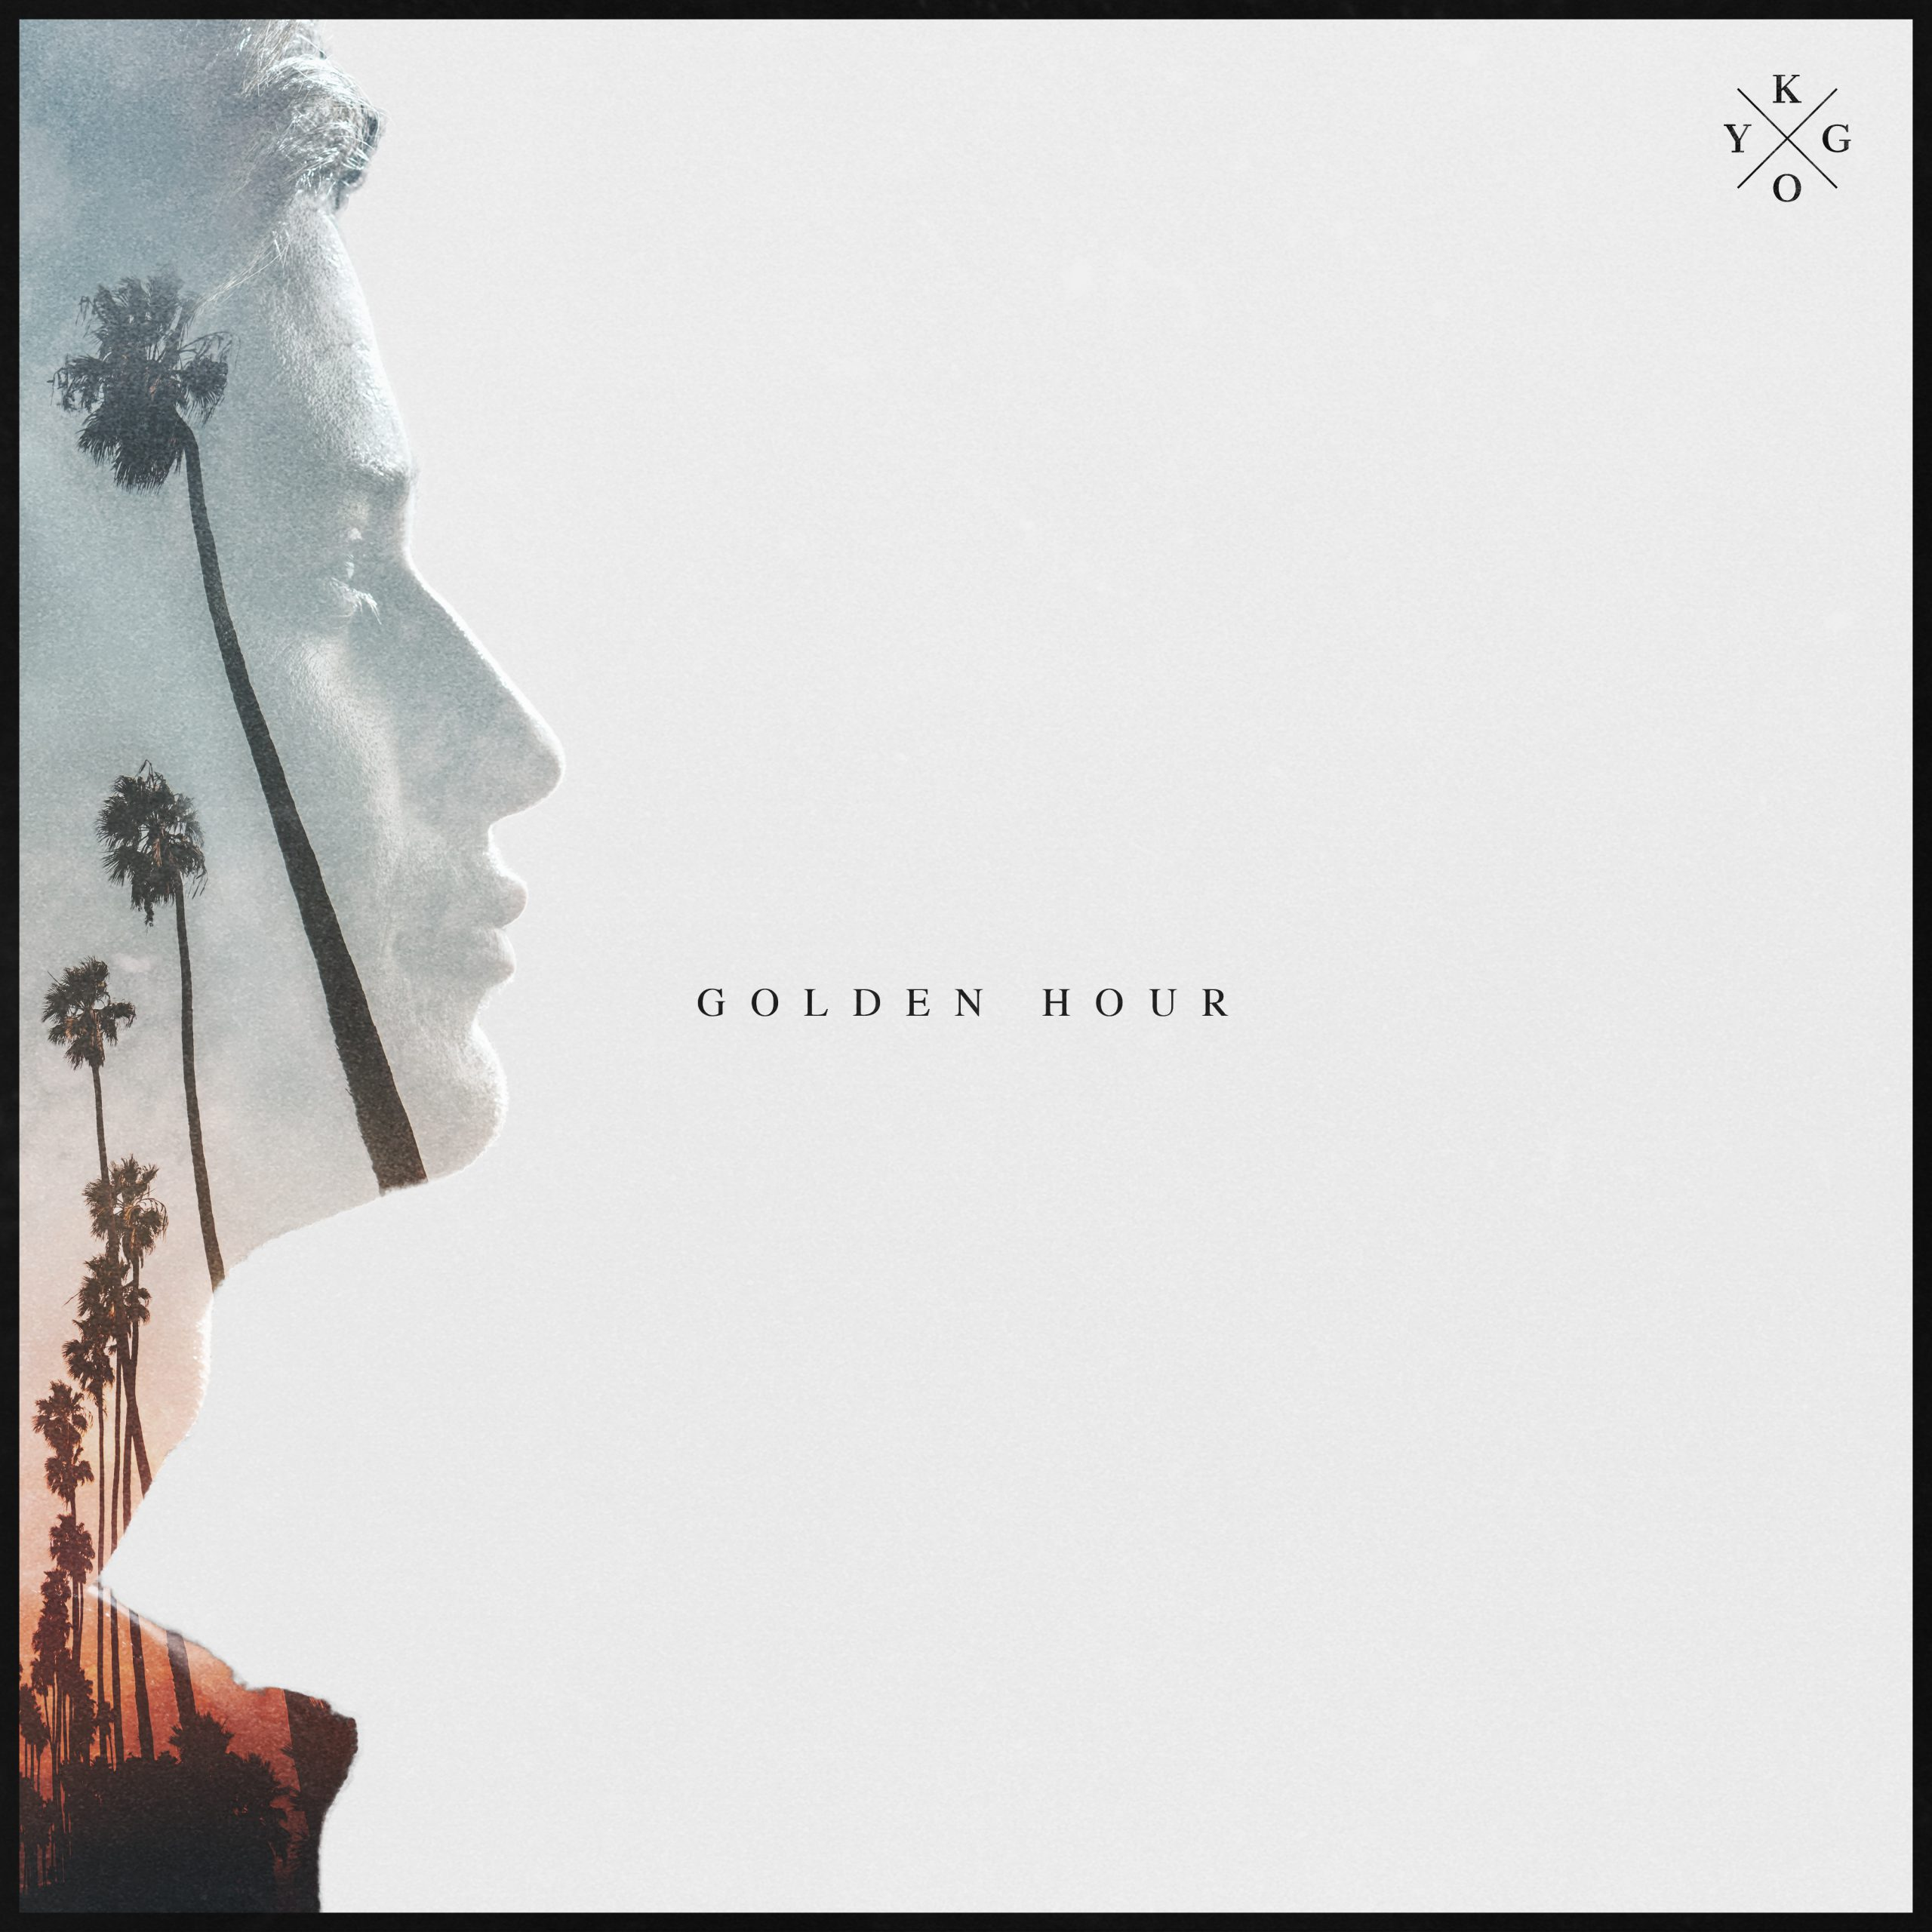 Kygo – Golden Hour